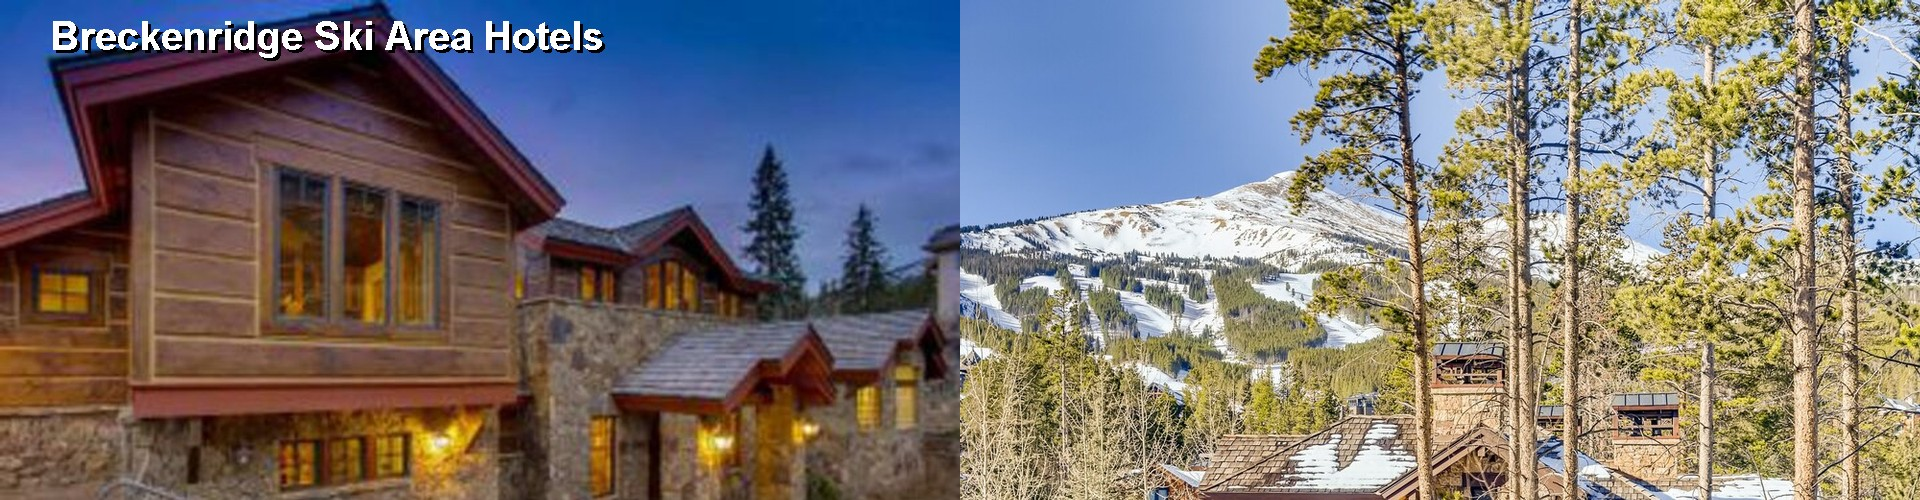 5 Best Hotels near Breckenridge Ski Area